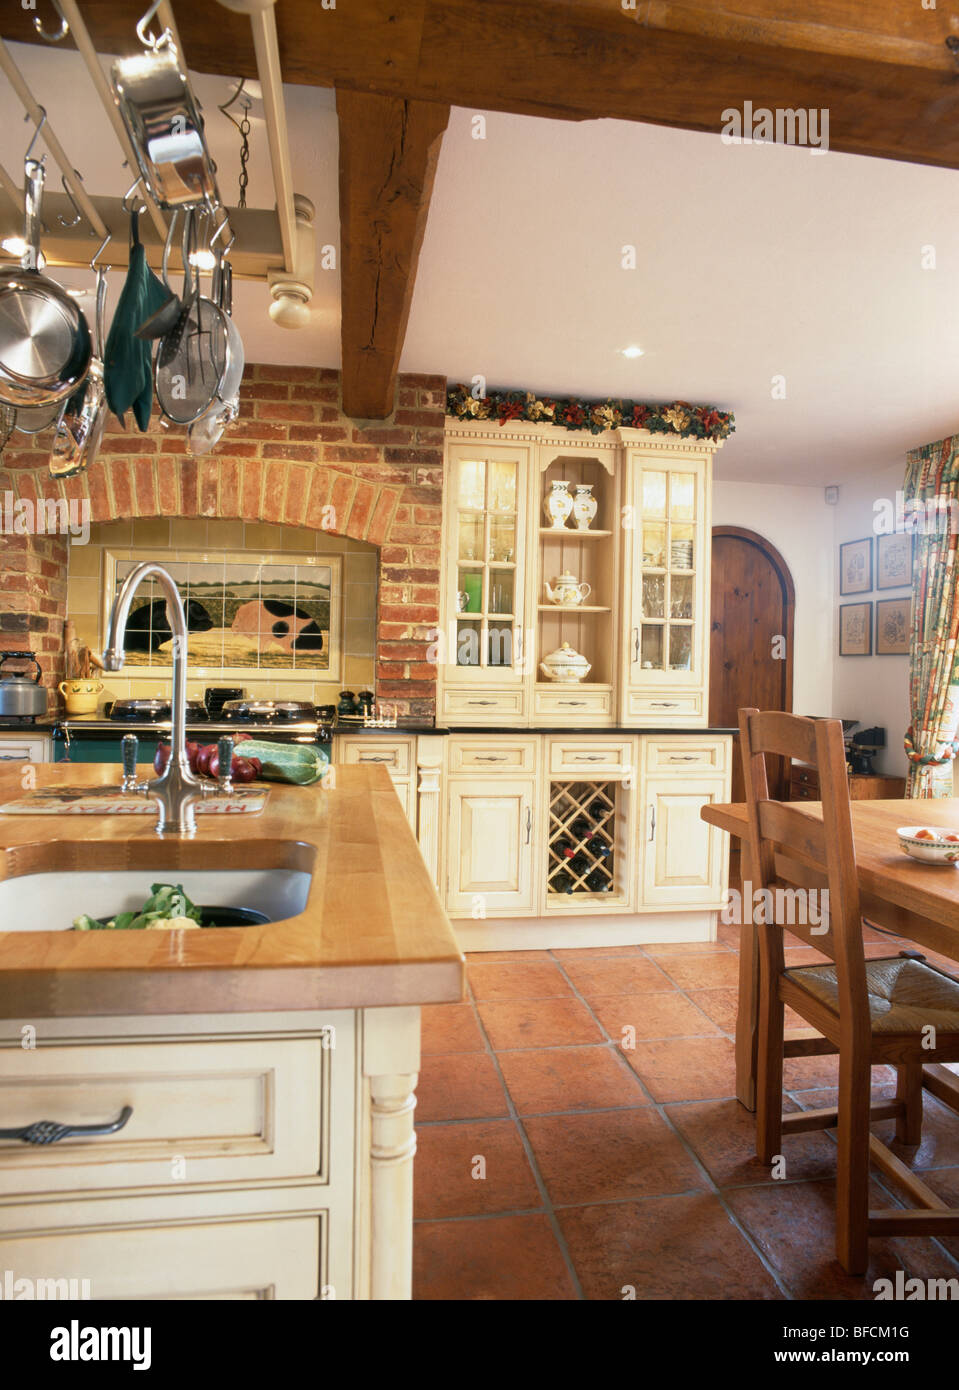 Merveilleux Terracotta Floor Tiles And Exposed Brick Wall In Country Kitchen With  Fitted Cream Units And Under Set Sink